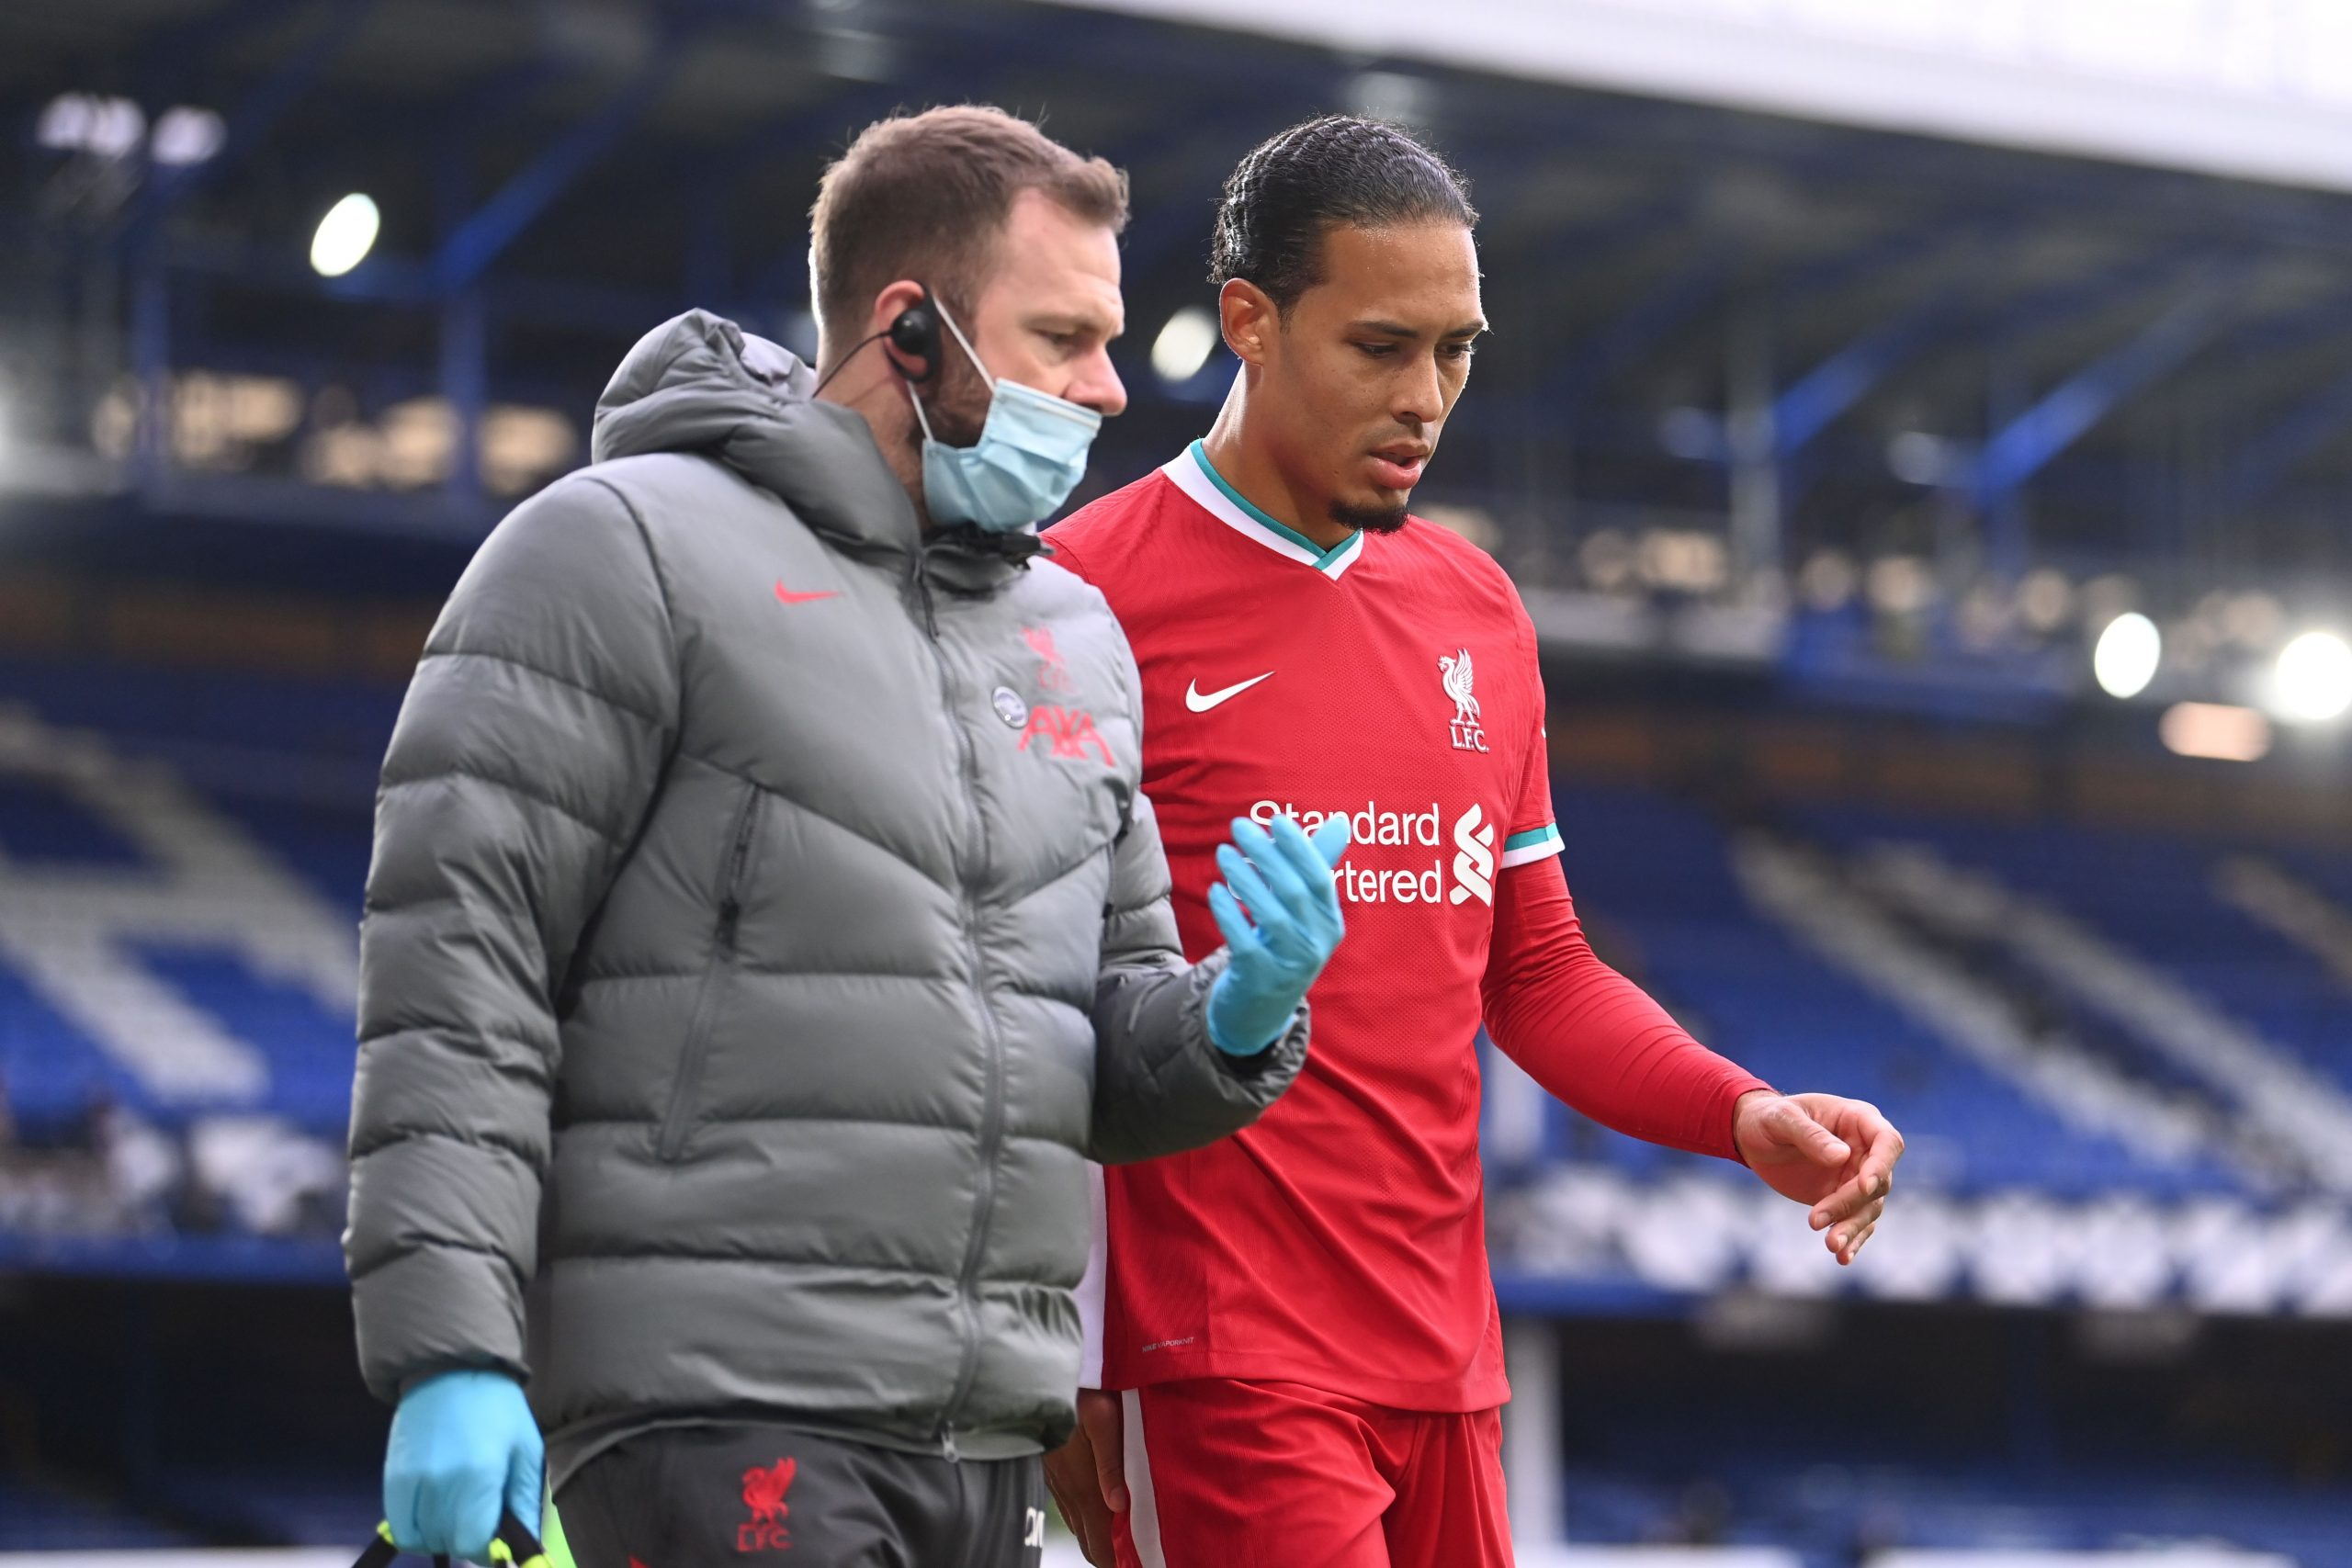 Liverpool's Dutch defender Virgil van Dijk leaves the field injured during the Merseyside derby. (GETTY Images)